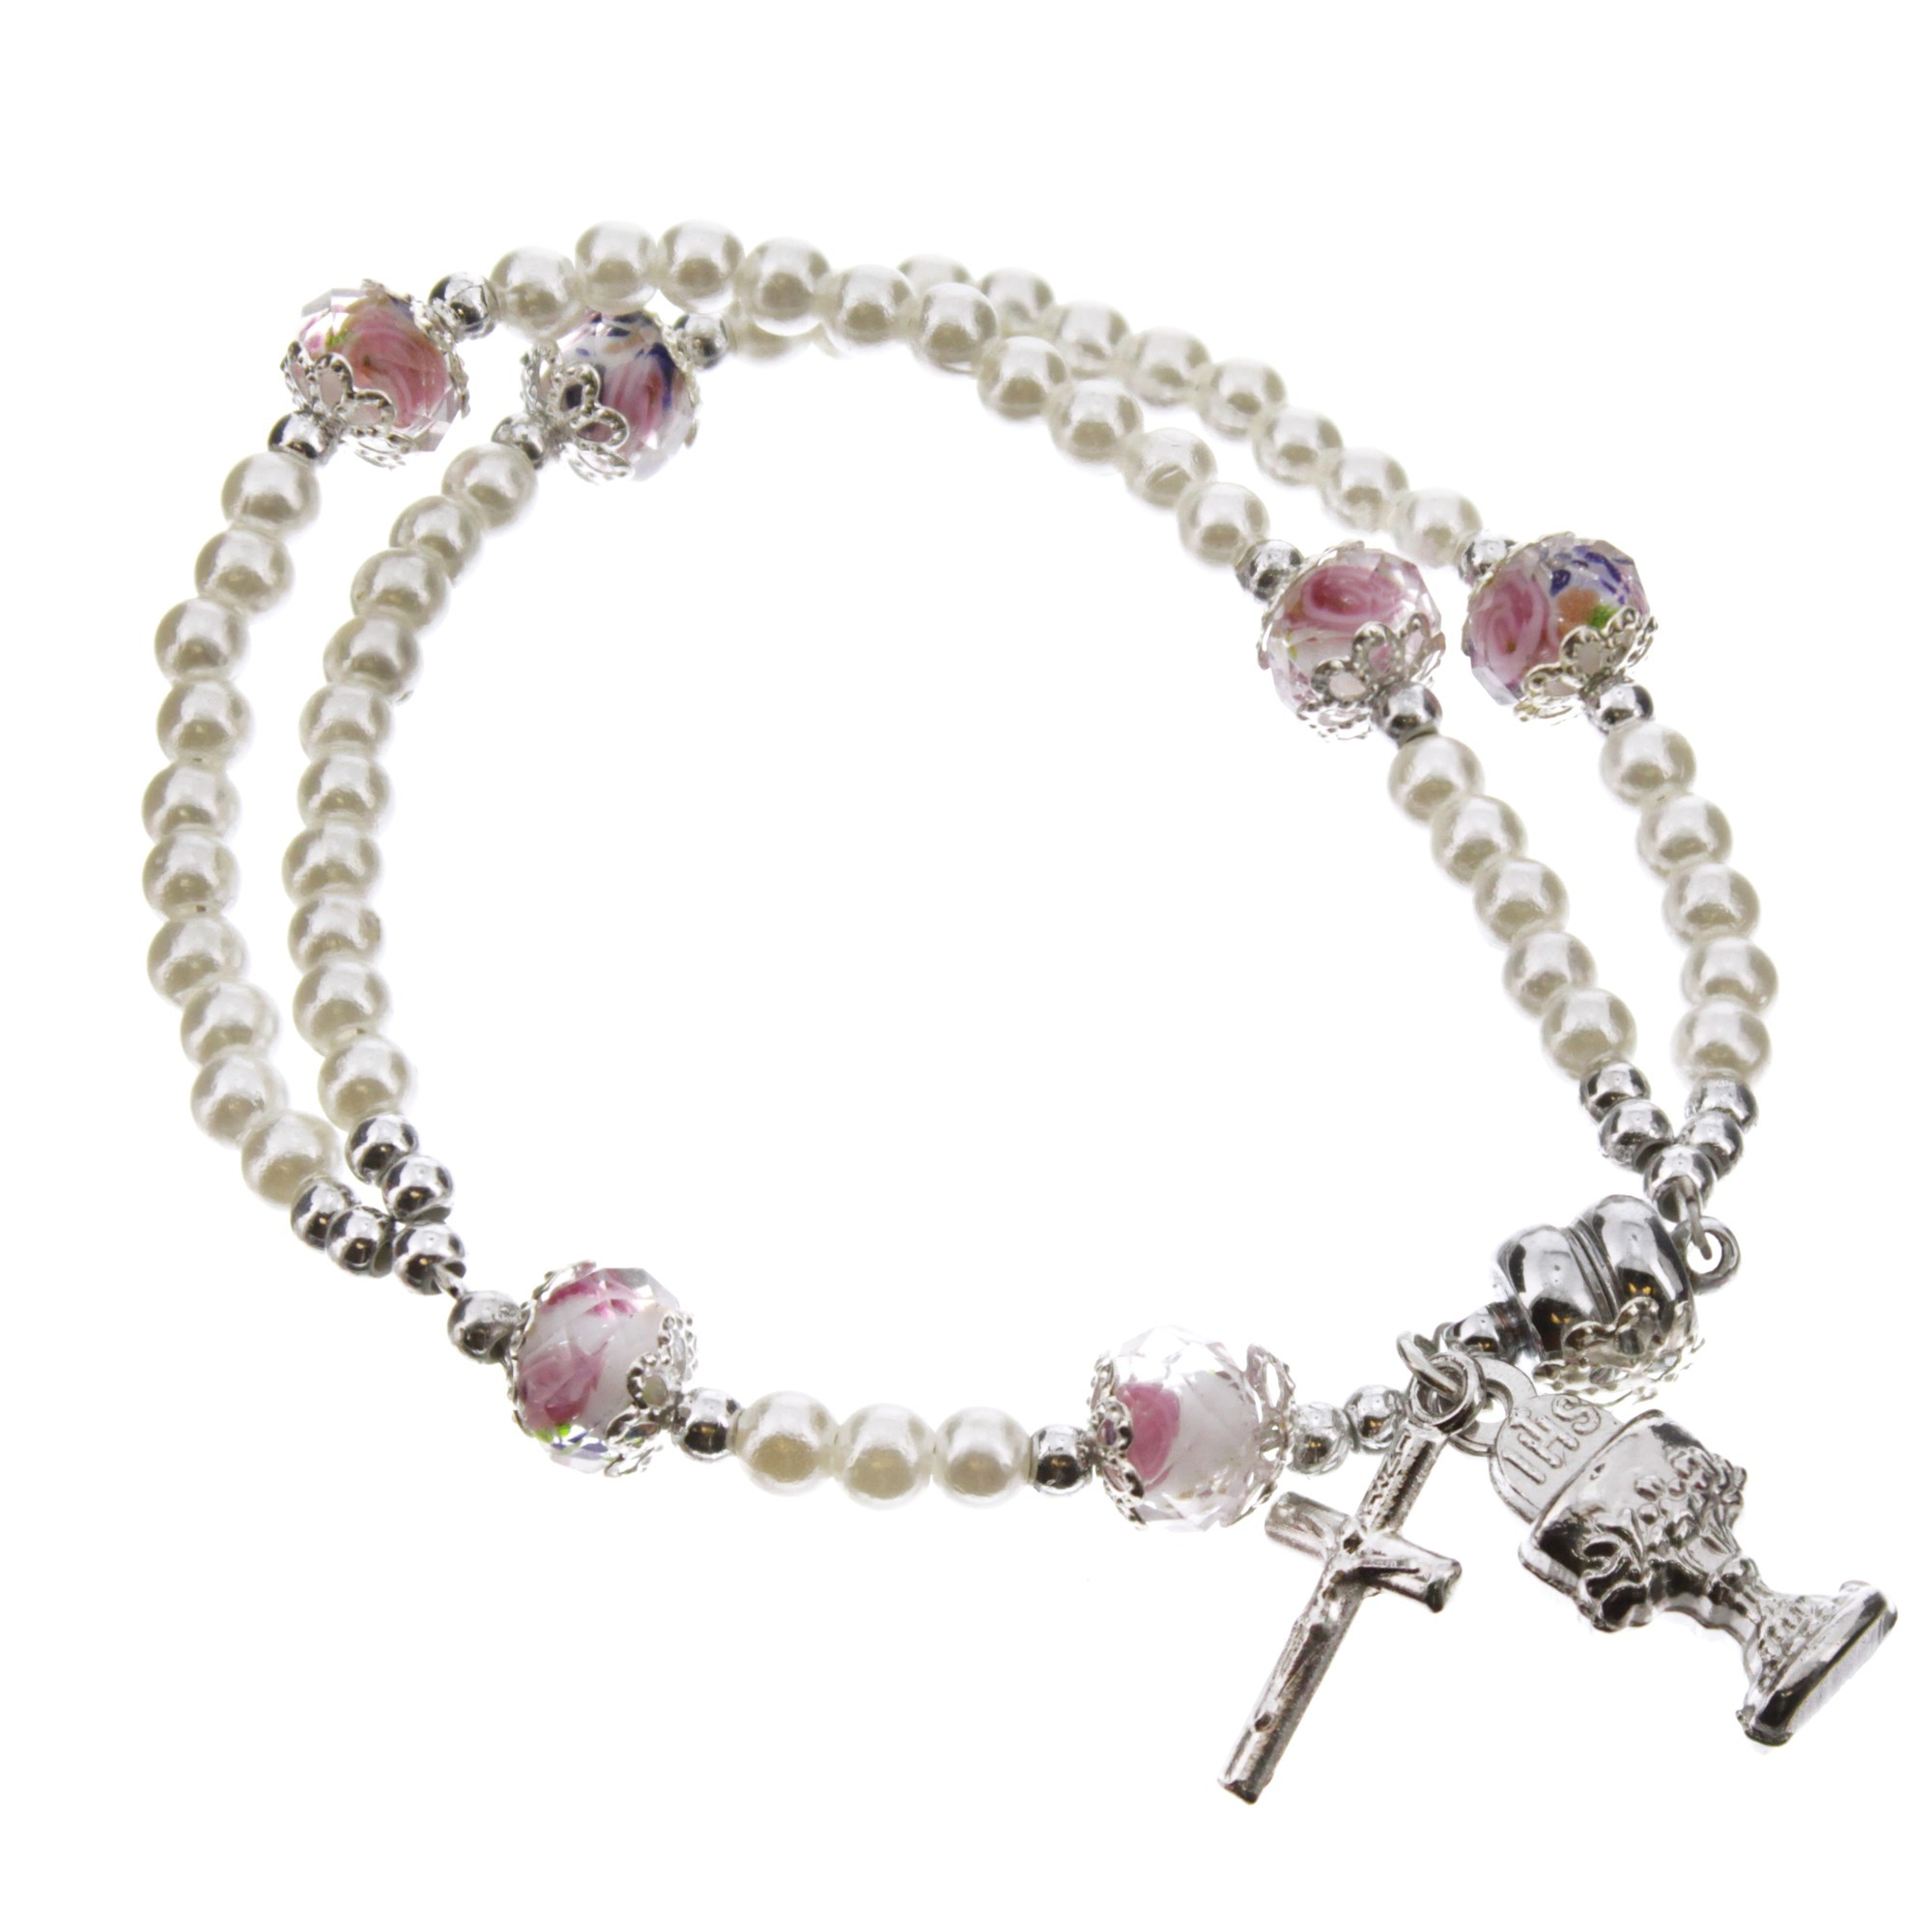 First Communion Rosary Wrap Bracelet